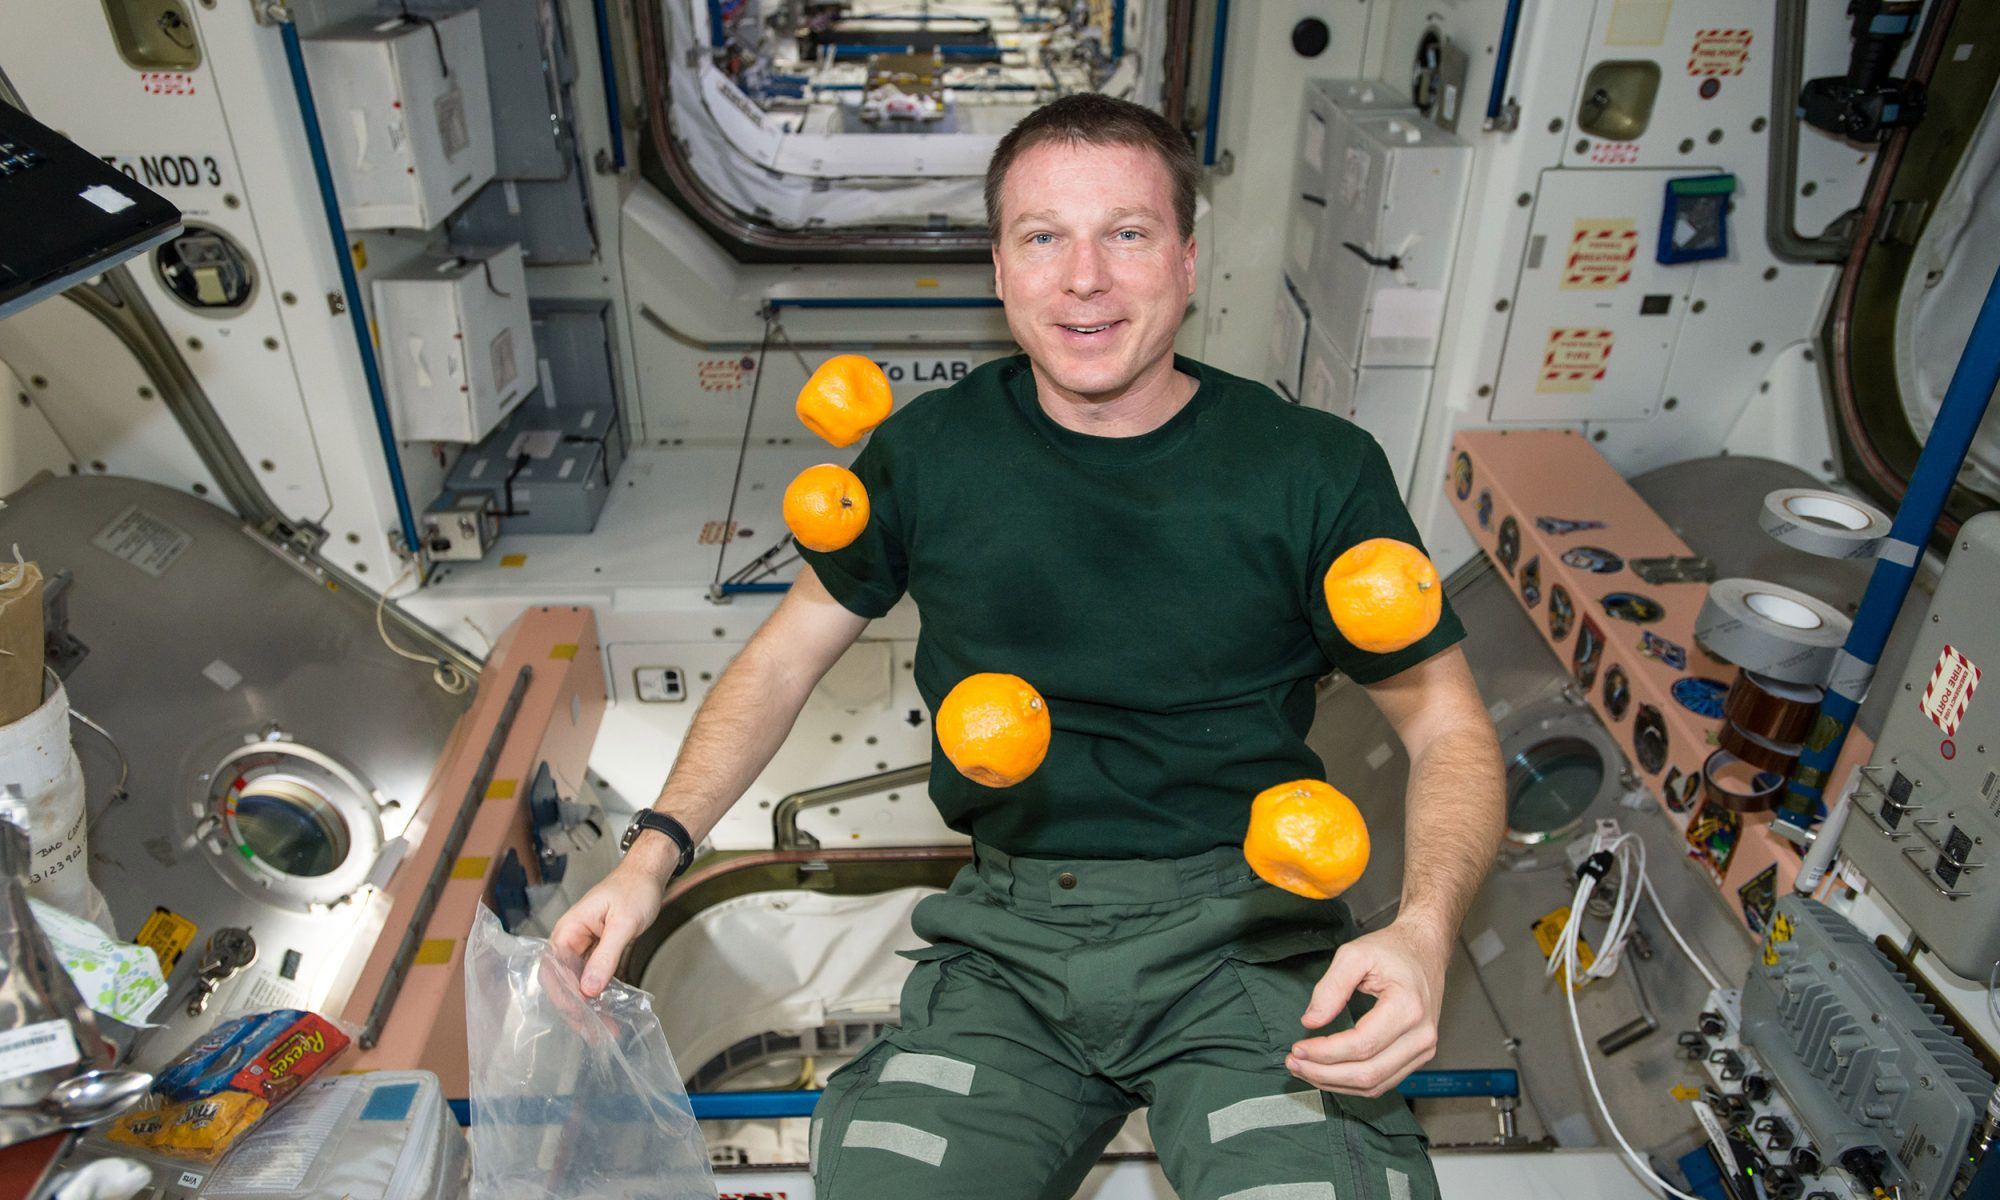 EC: What Do Astronauts Eat for Breakfast?